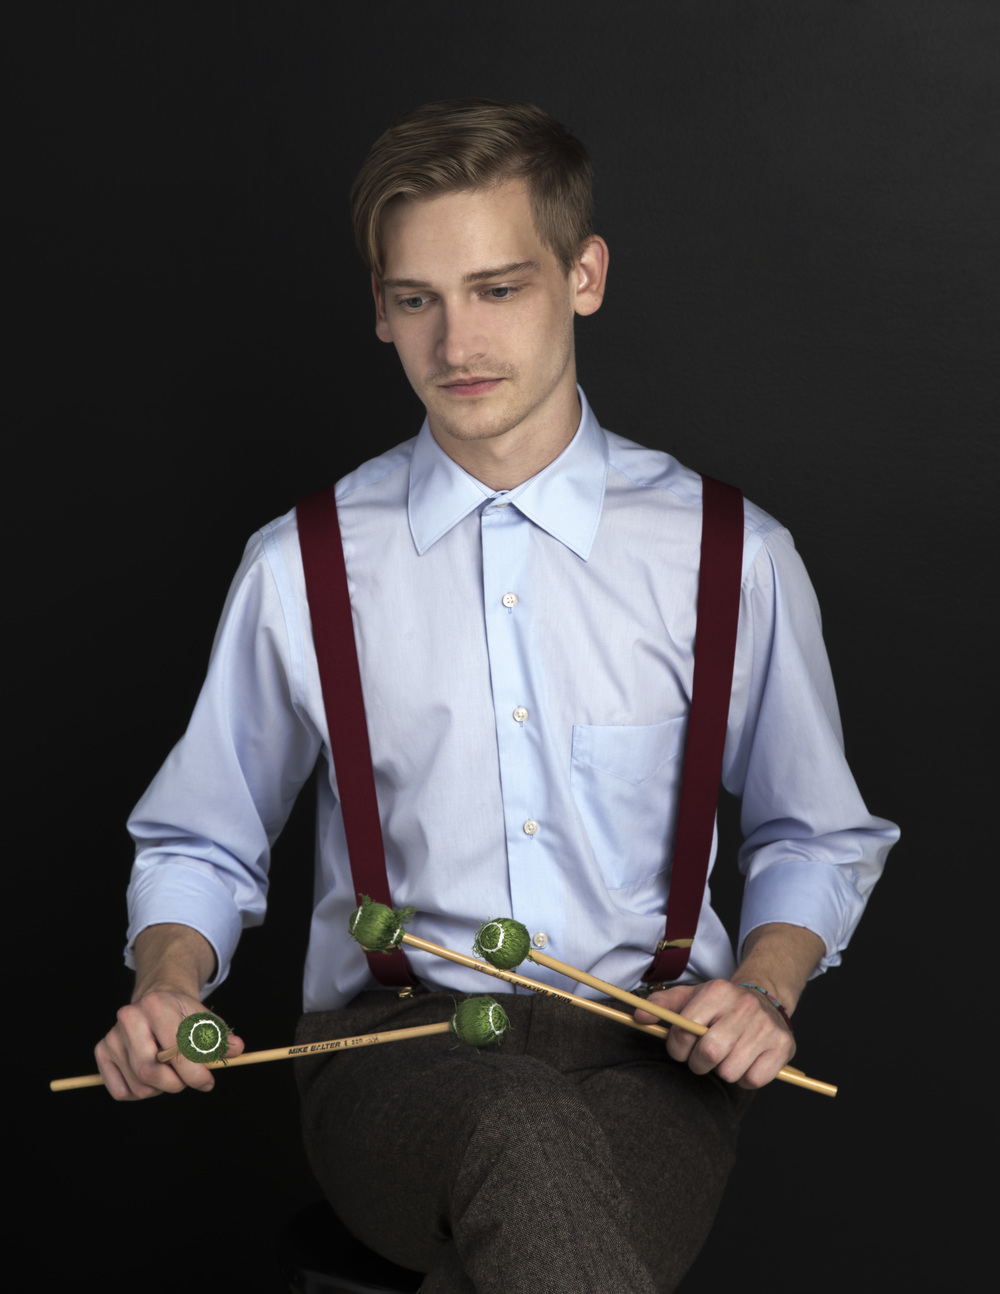 Kurt Fedde   Percussion, Composition   Kurt completed his Bachelors of Music degree in percussion performance and music education at the Eastman School of Music in May 2014 and will spend the upcoming year performing and student-teaching in Rochester.